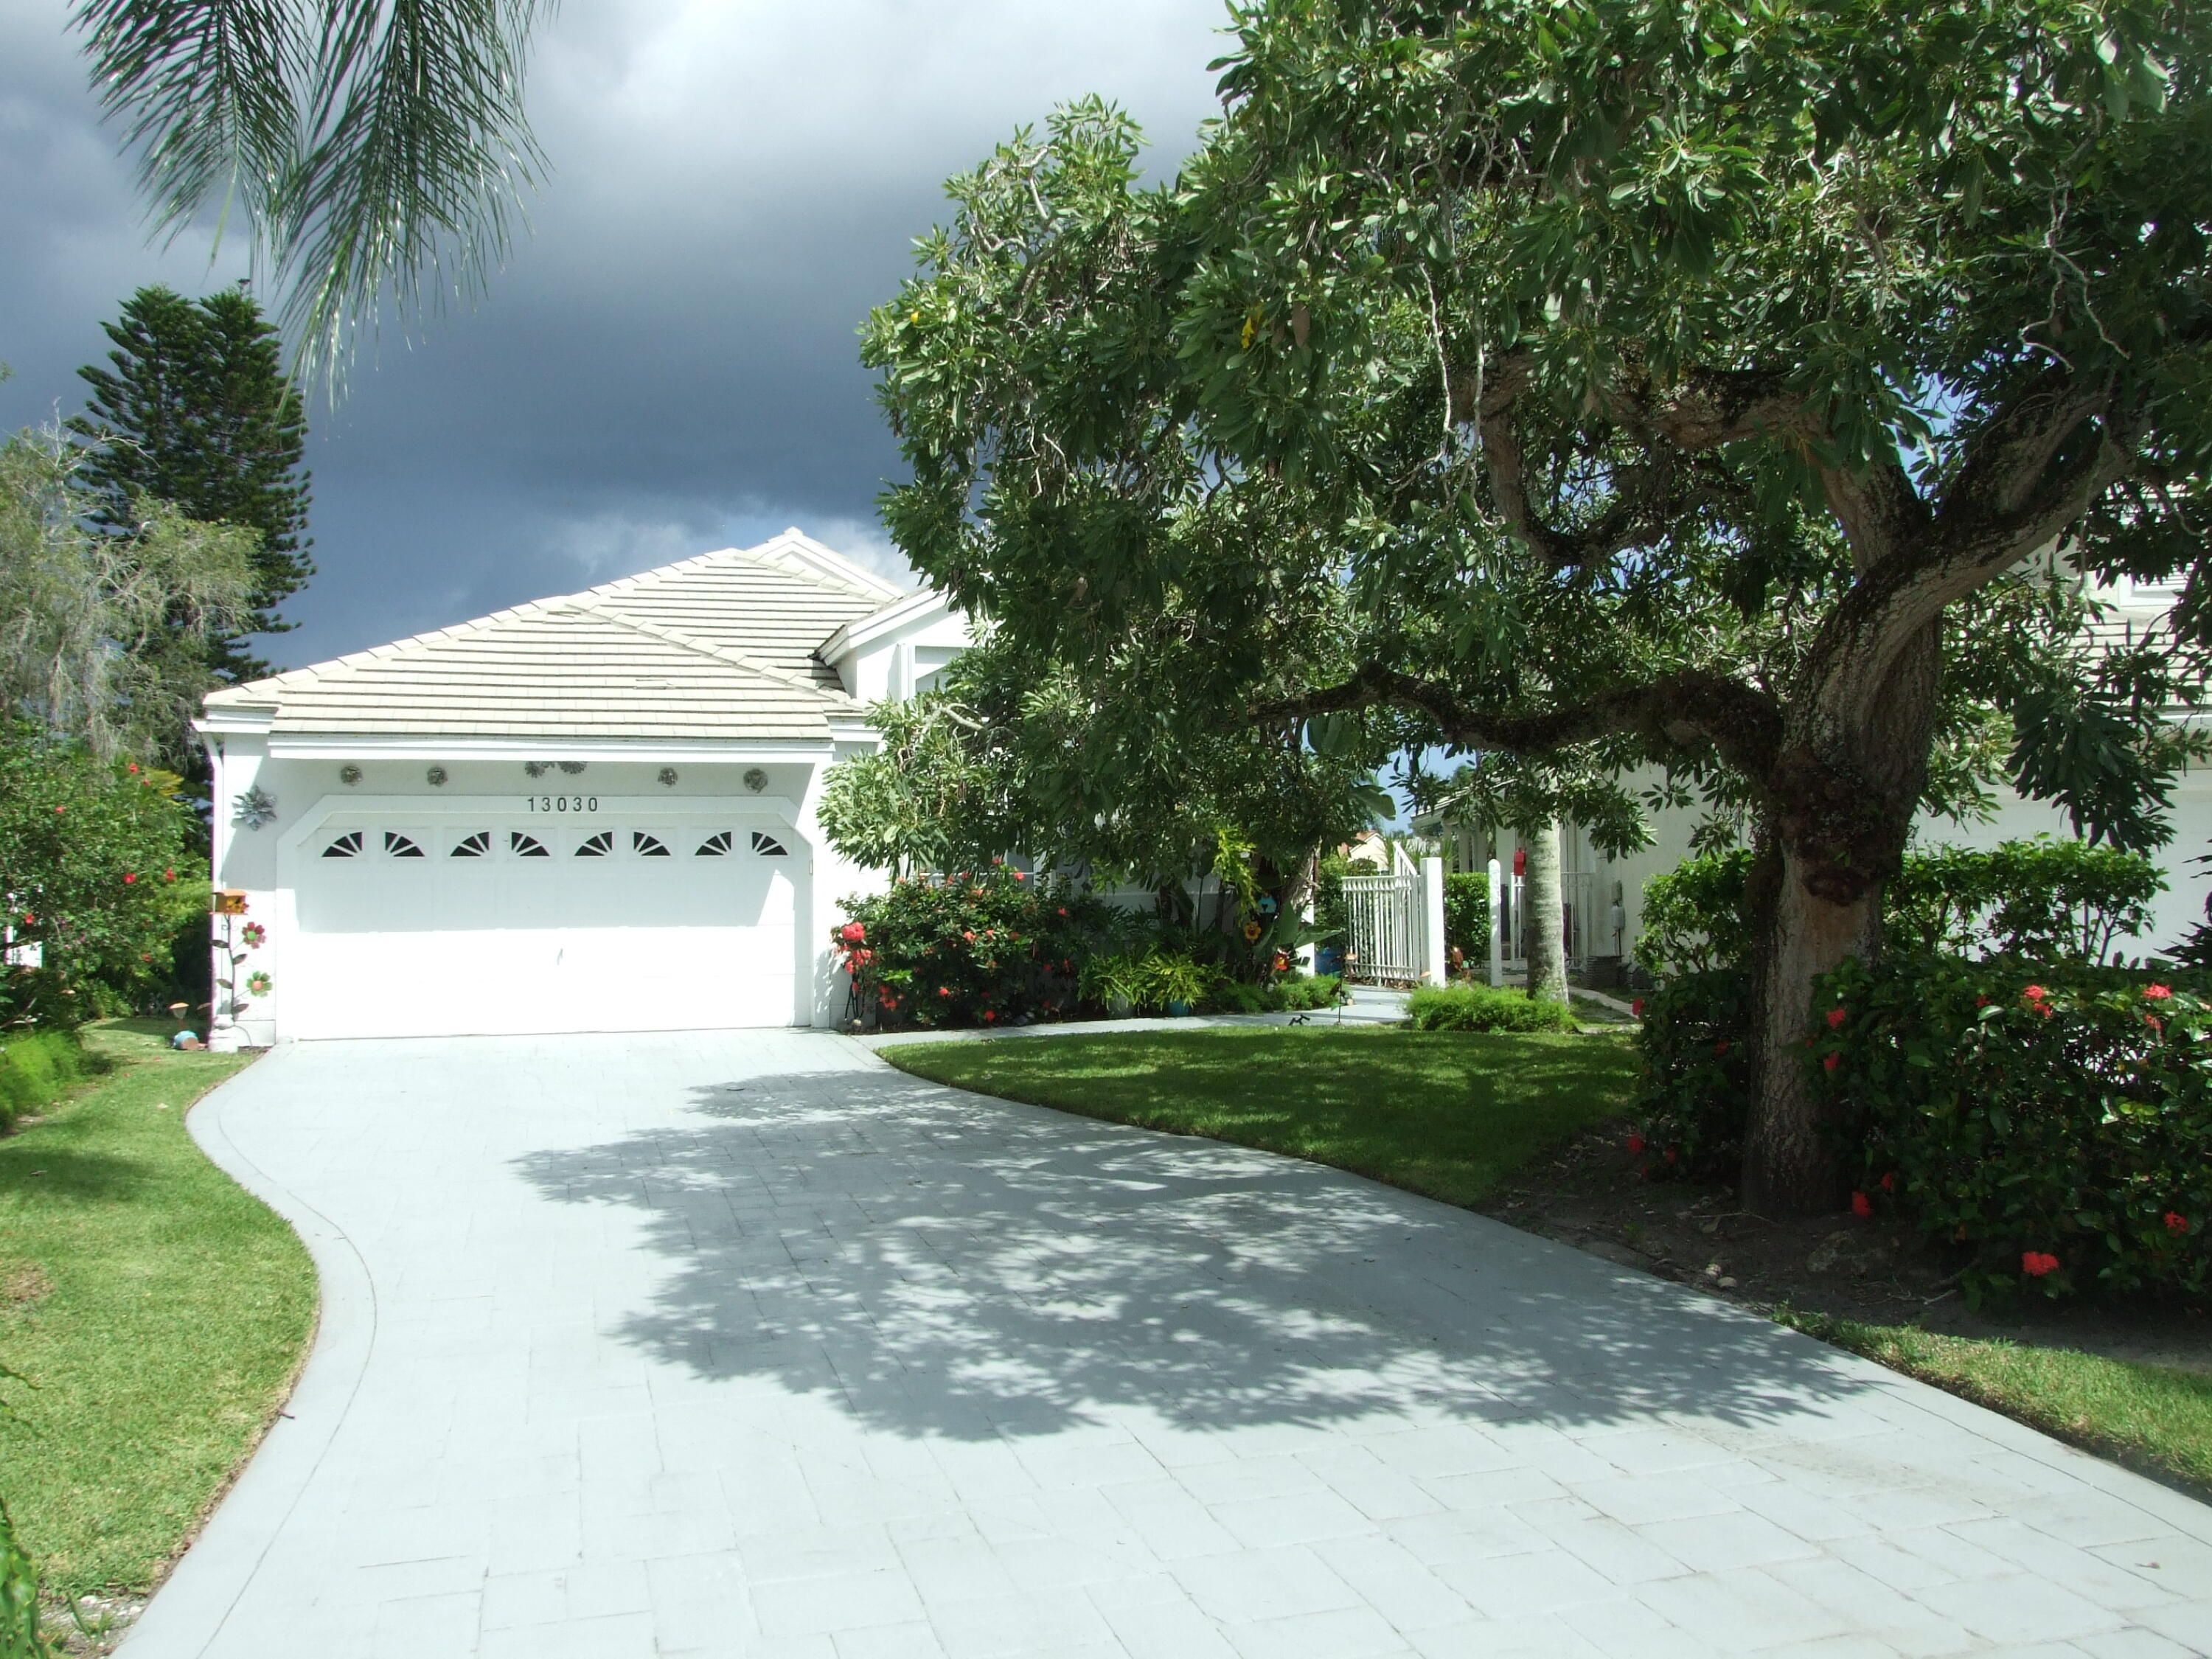 13030  Touchstone Place  For Sale 10744622, FL